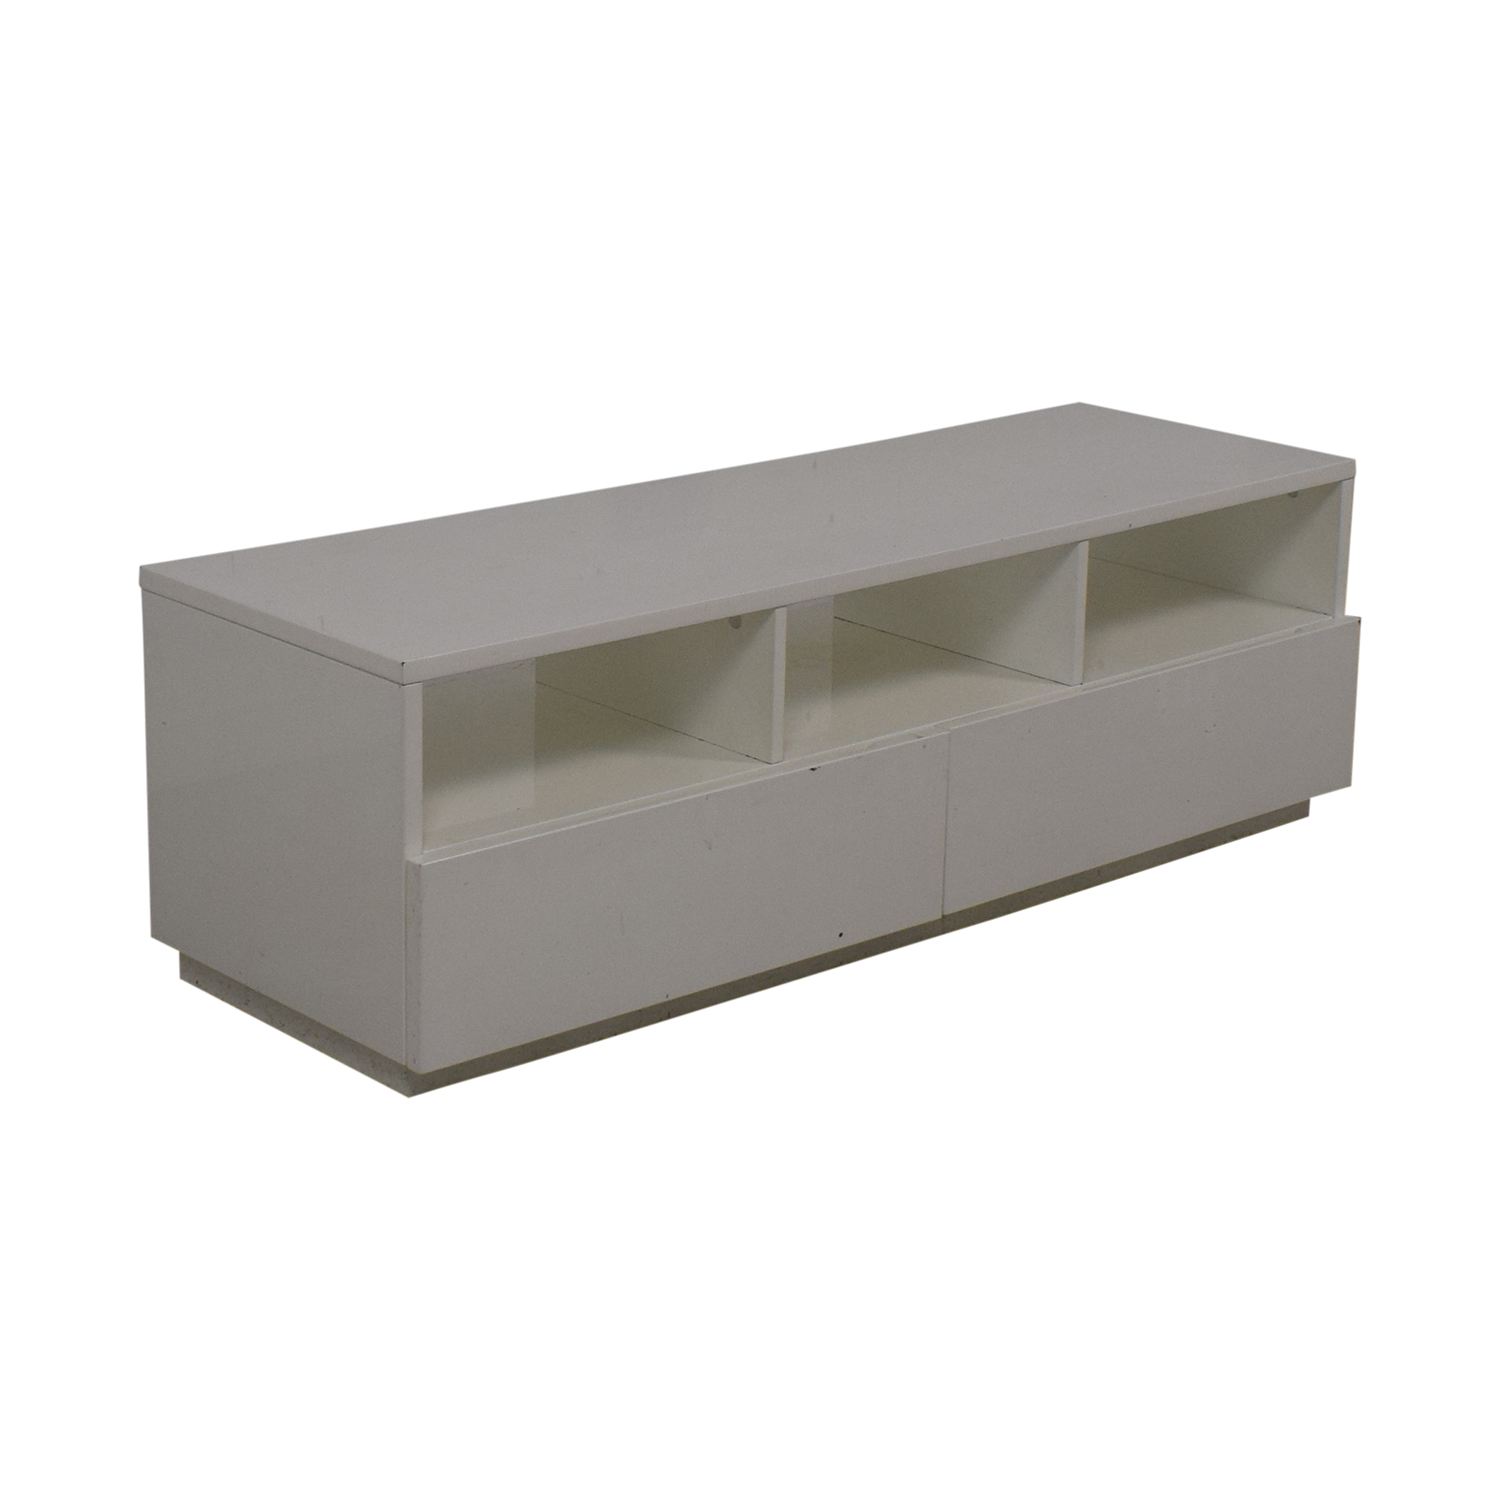 Crate & Barrel CB2 Chill White Media Console white